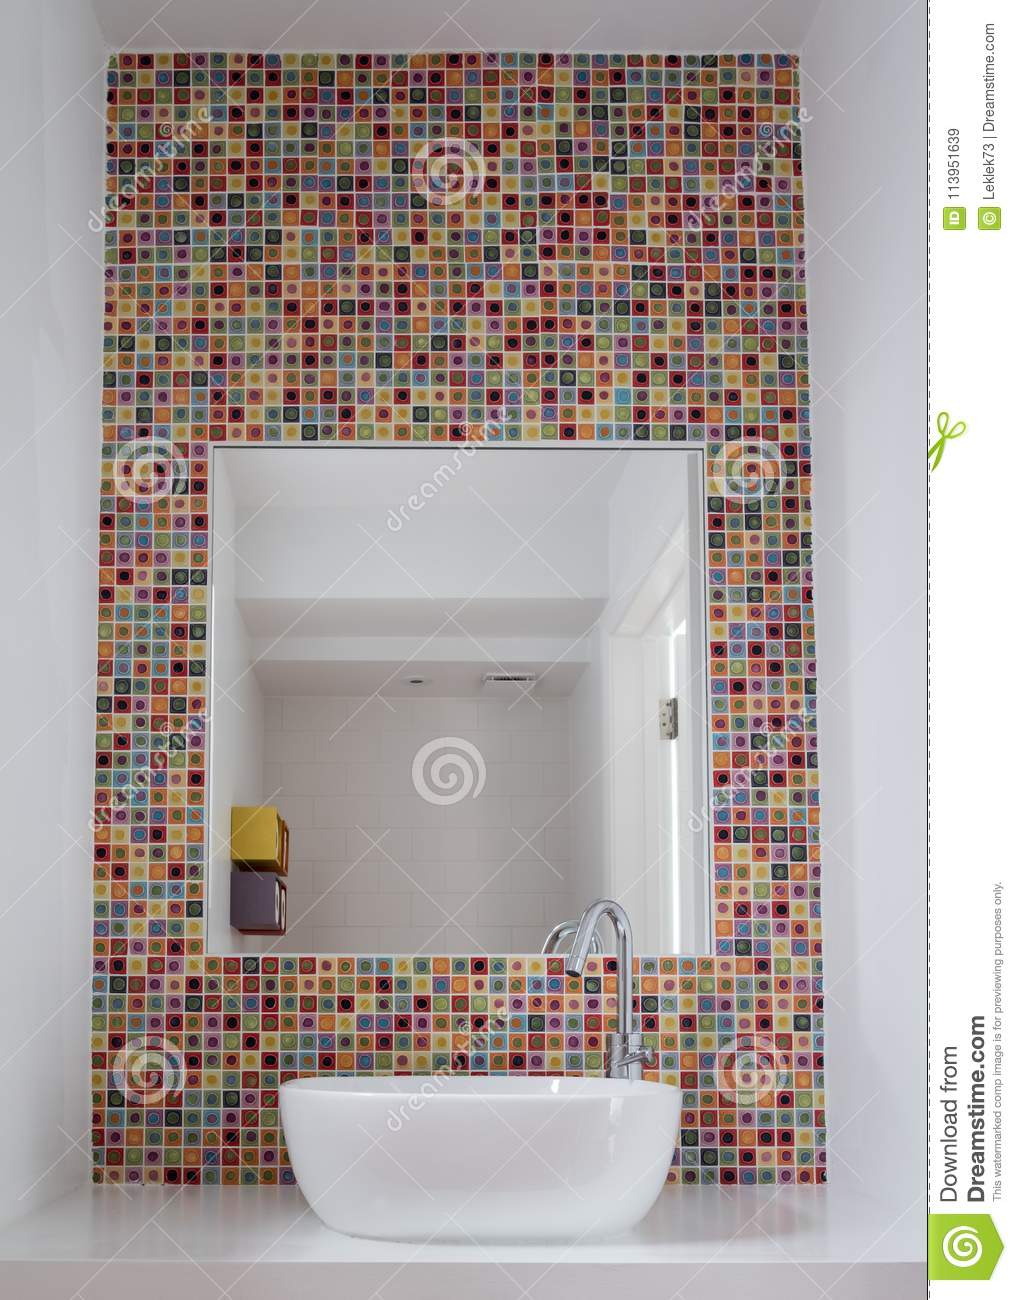 Bathroom Wash Basin With Colorful Glass Mosaic Tiles And Mirror